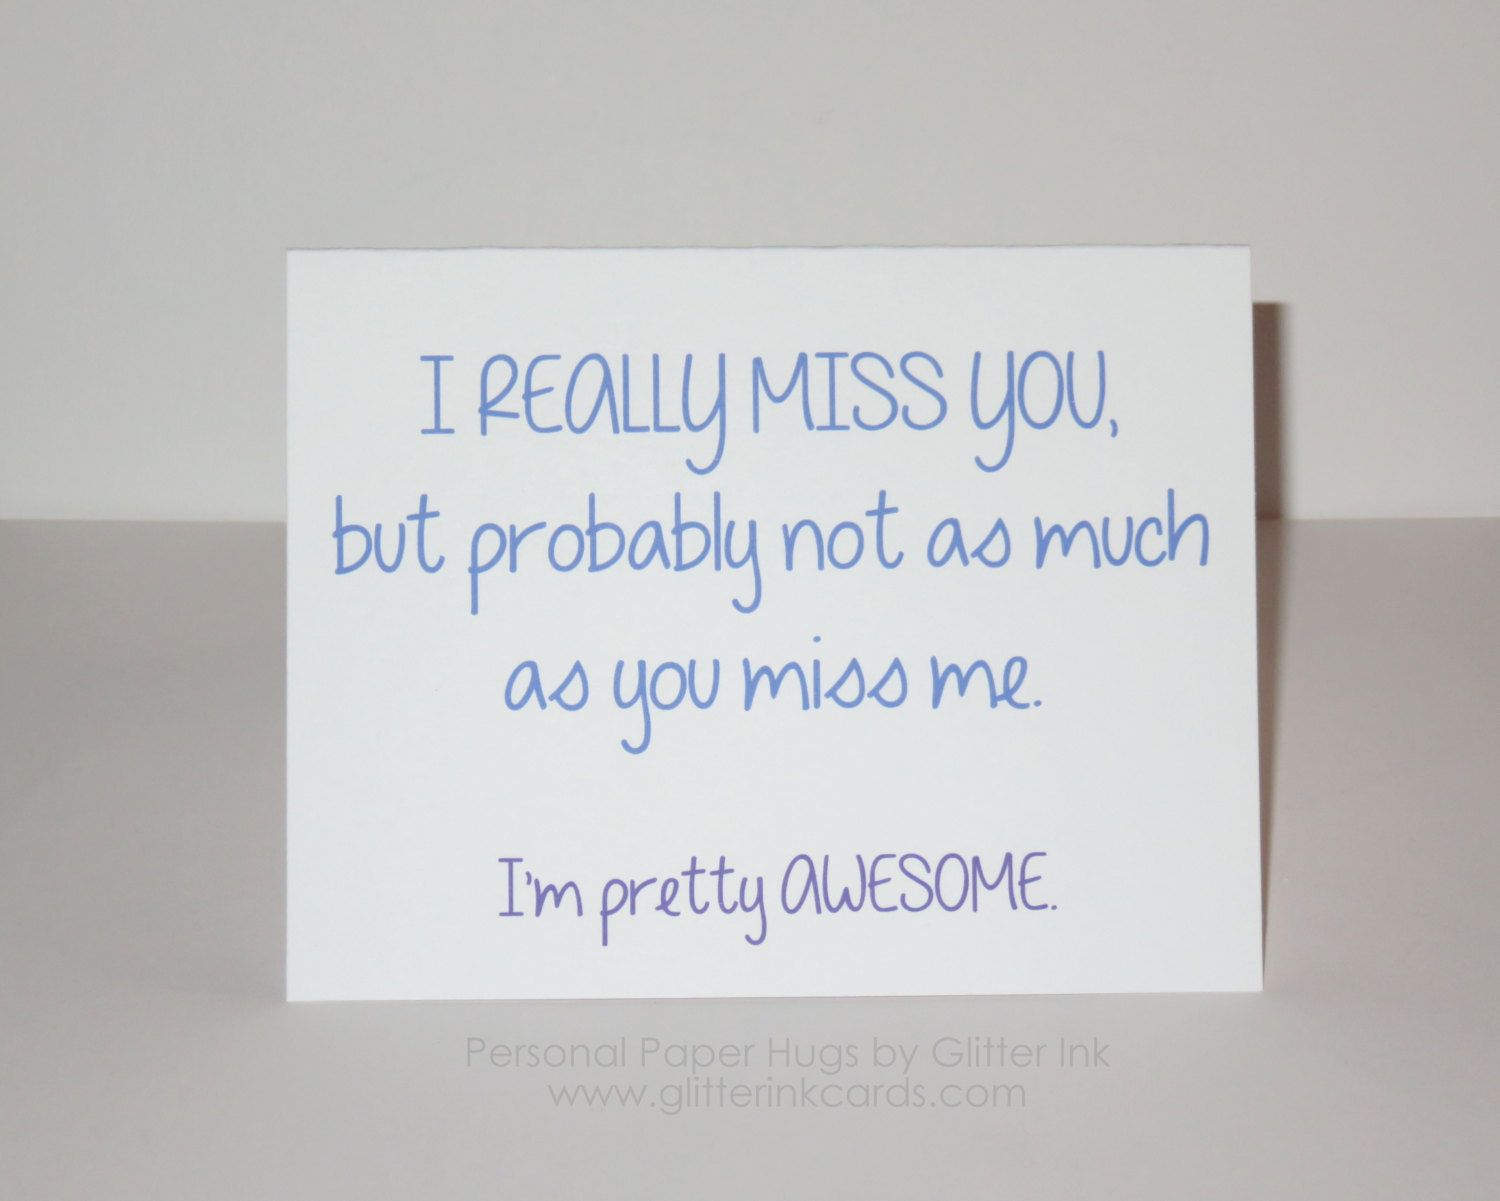 I Really Miss You Funny Miss You Card Funny Long Distance Card Funny Long Distance Friendship Birthday Quotes For Him Miss You Funny Friends Quotes Funny